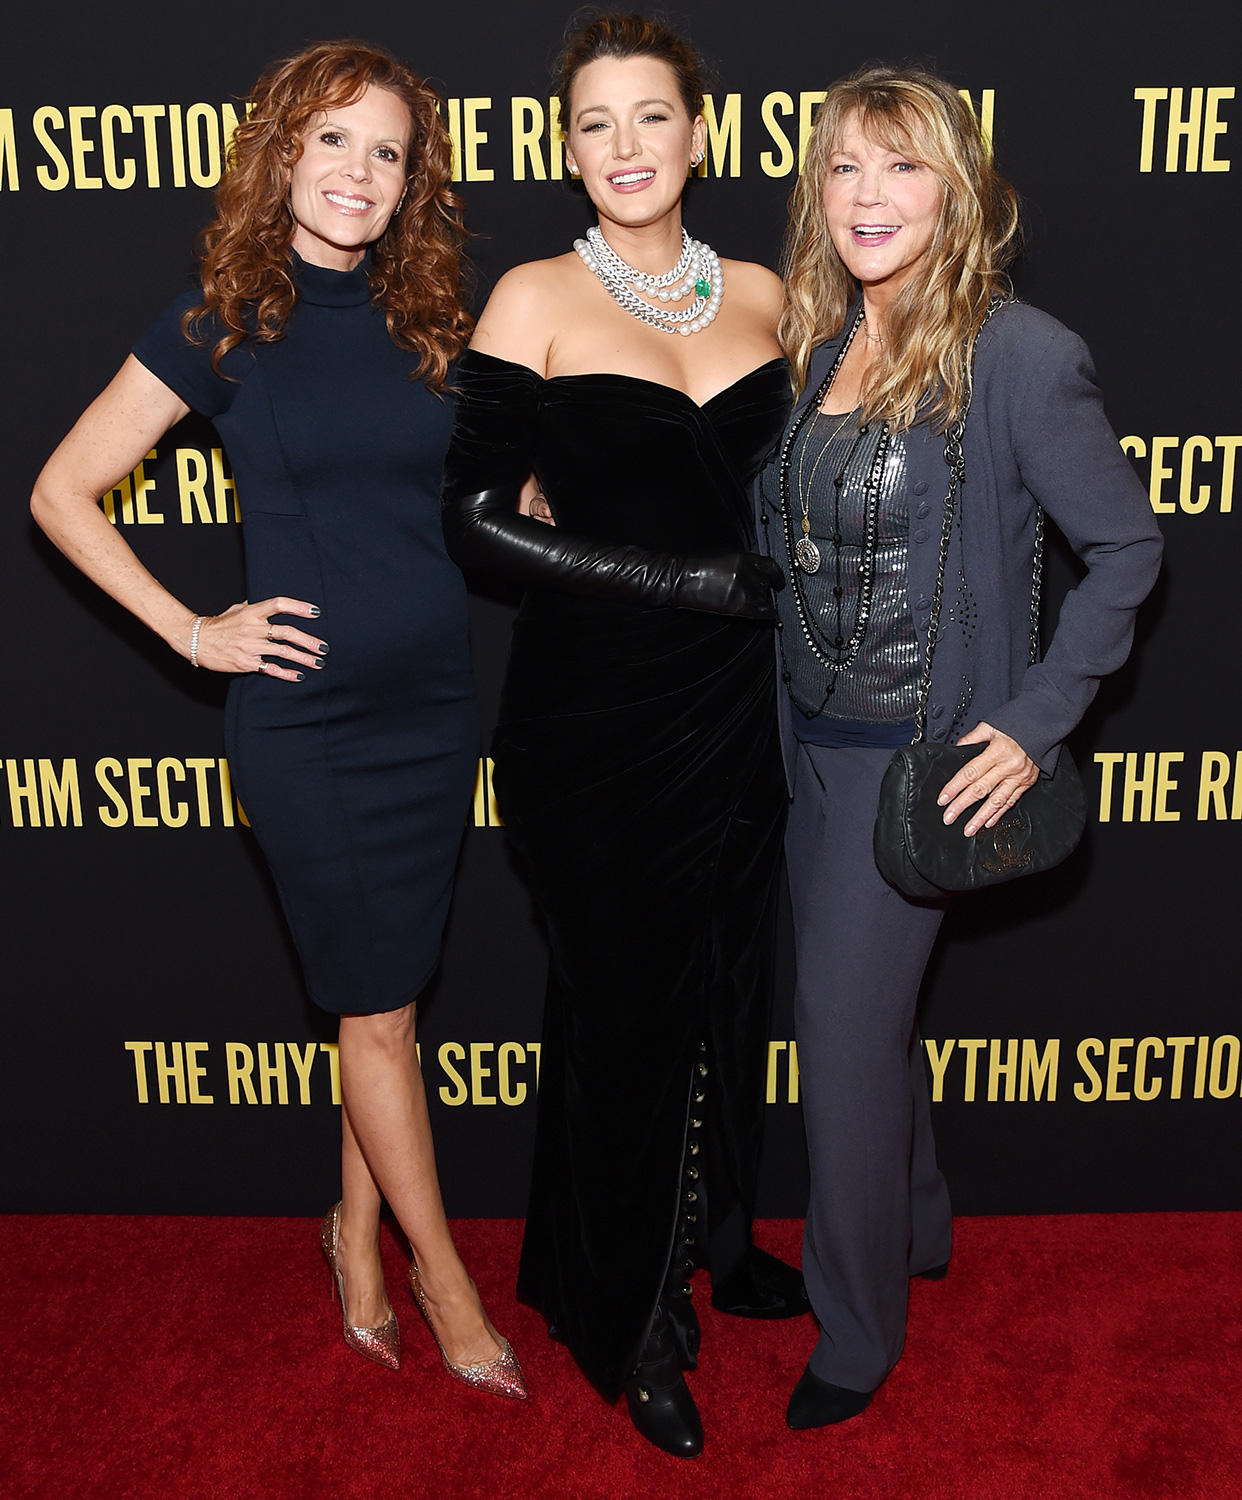 """Robyn Lively, Blake Lively, and Elaine Lively attend the screening of """"The Rhythm Section"""" at Brooklyn Academy of Music on January 27, 2020 in New York City"""